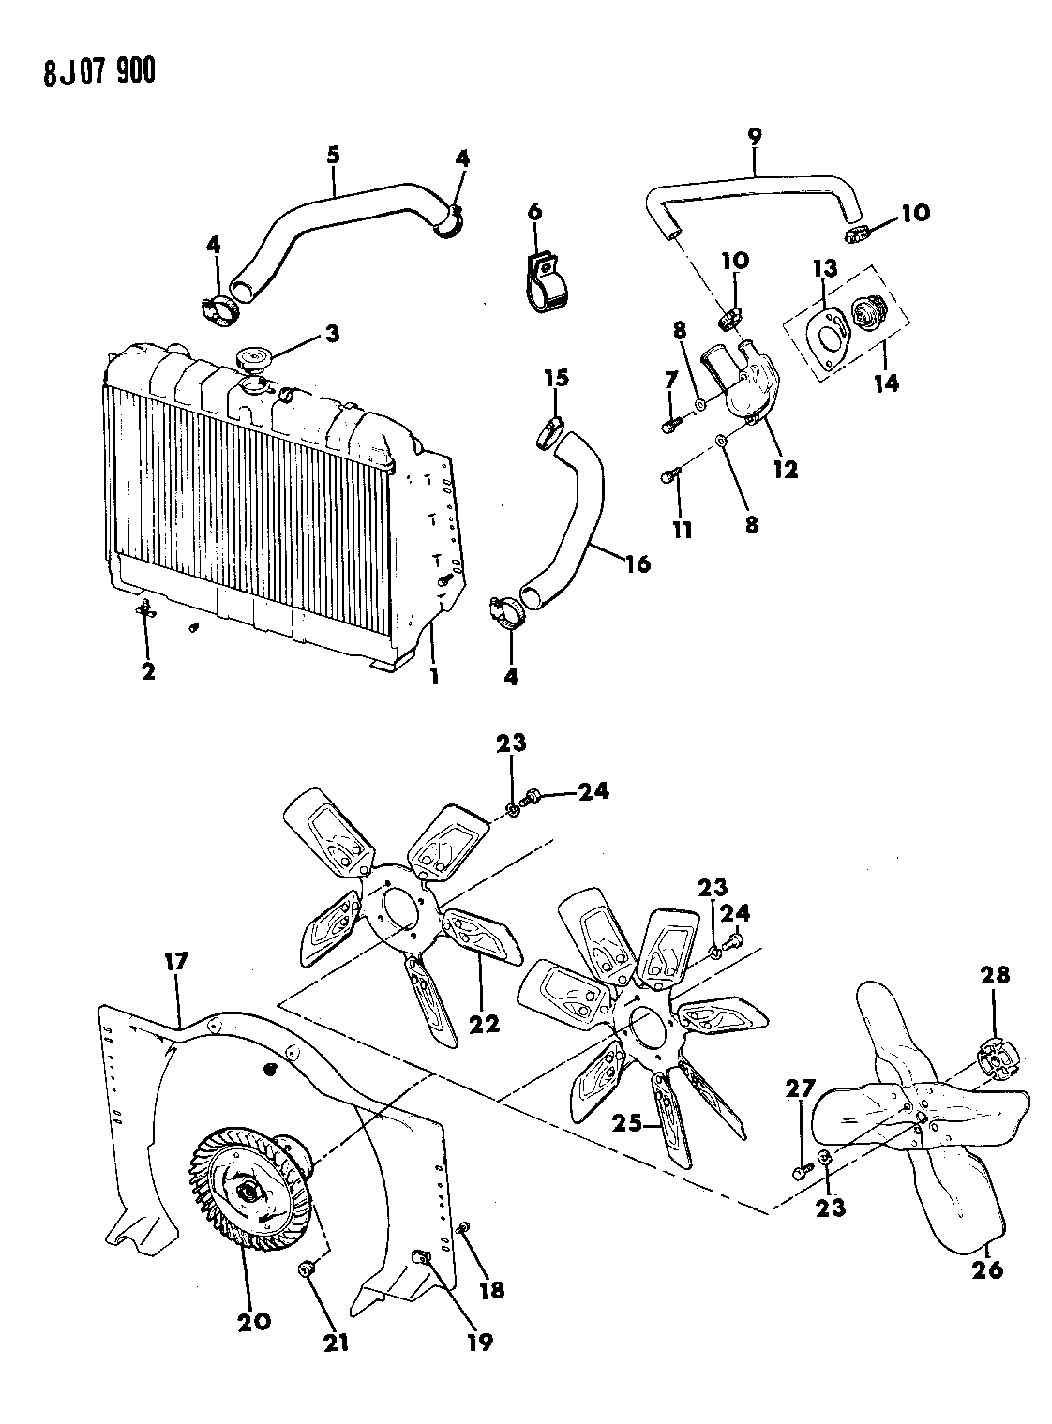 1996 jeep grand cherokee radiator diagram